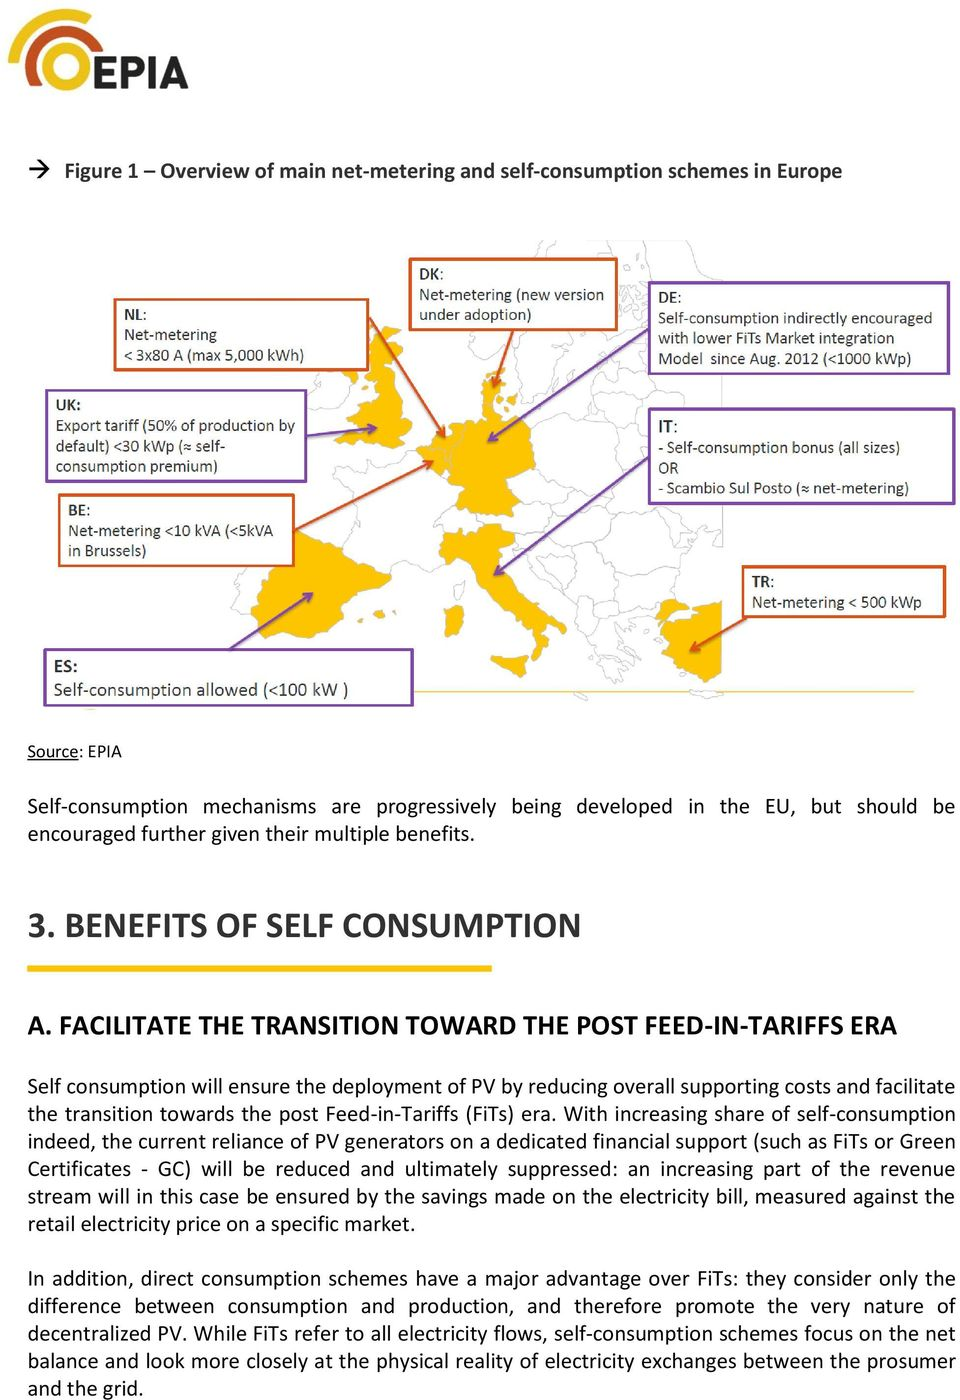 FACILITATE THE TRANSITION TOWARD THE POST FEED-IN-TARIFFS ERA Self consumption will ensure the deployment of PV by reducing overall supporting costs and facilitate the transition towards the post